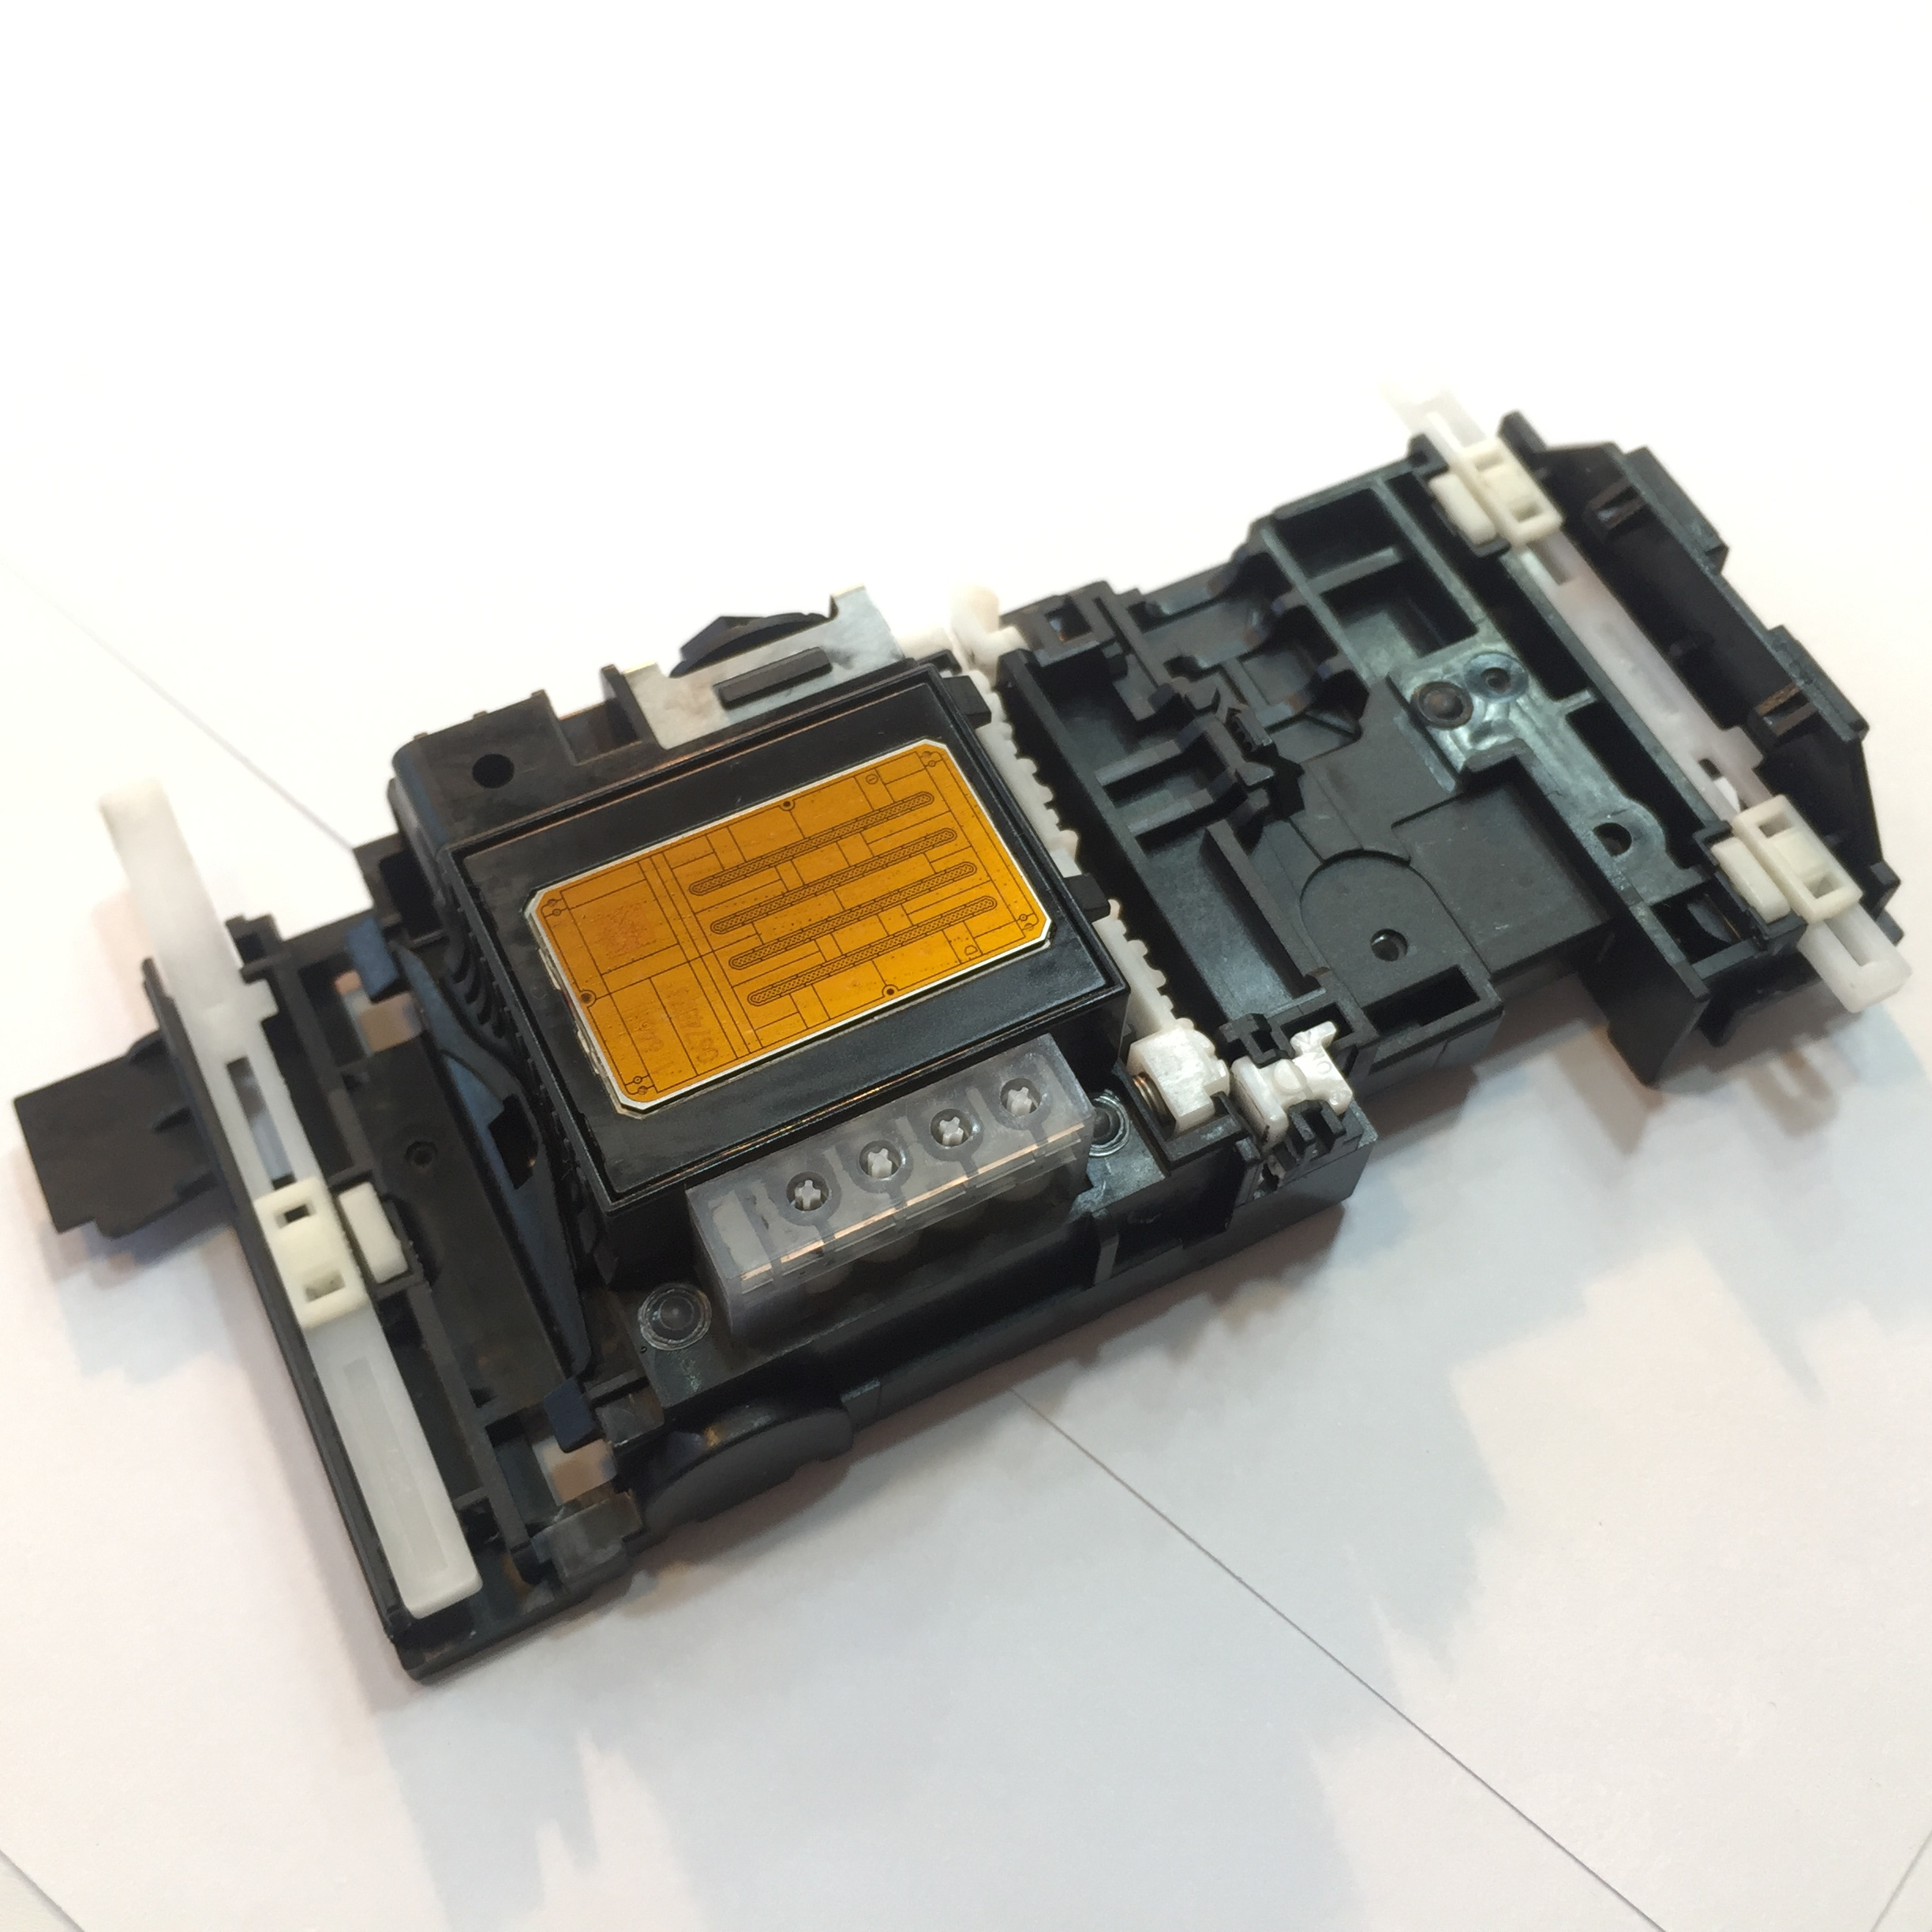 New brother 960 Printhead for MFC-130 150 155 230 240 260 265 330 440 460